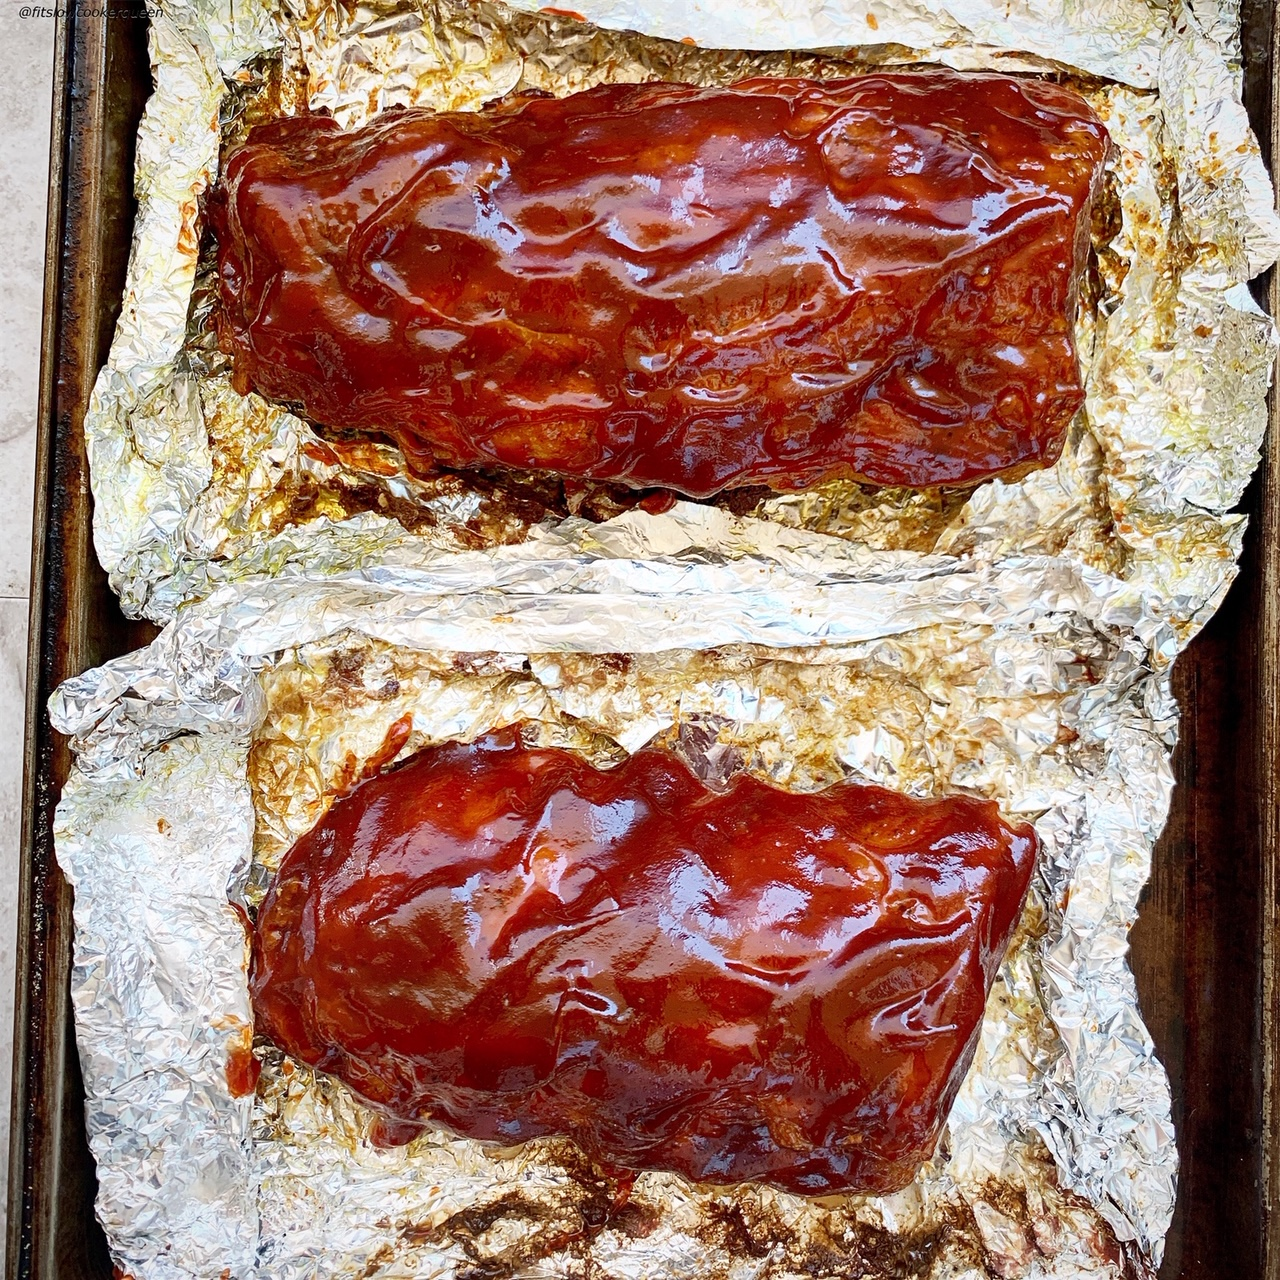 cooked ribs in foil with bbq sauce for {VIDEO} Slow Cooker Instant Pot Ribs (Low-Carb, Paleo, Whole30)